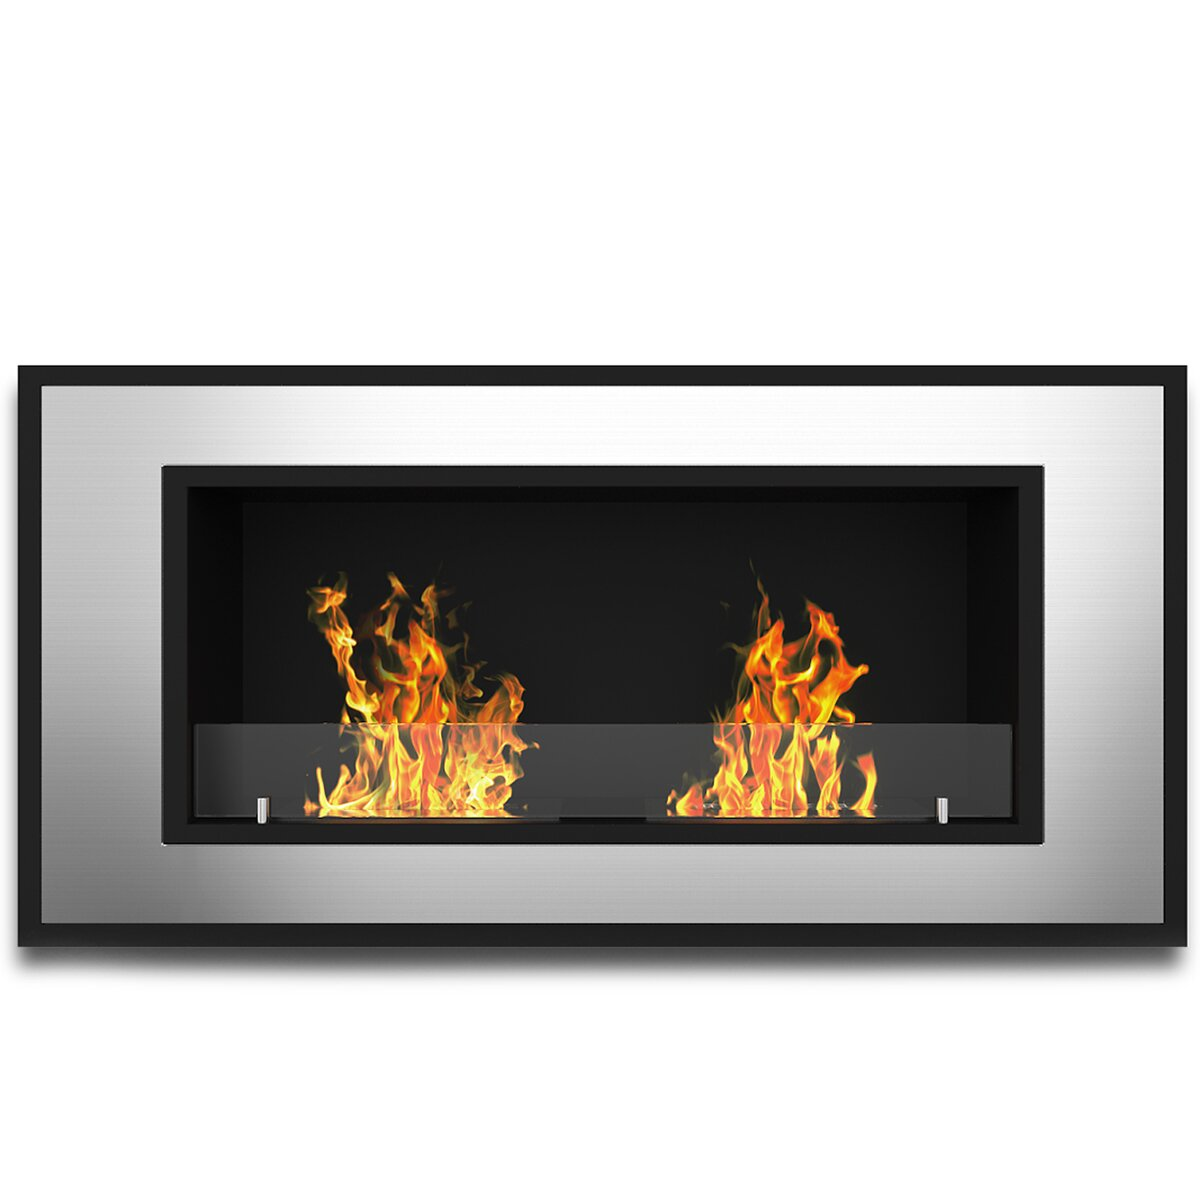 Image Result For Wall Mounted Bio Ethanol Fireplace Reviews